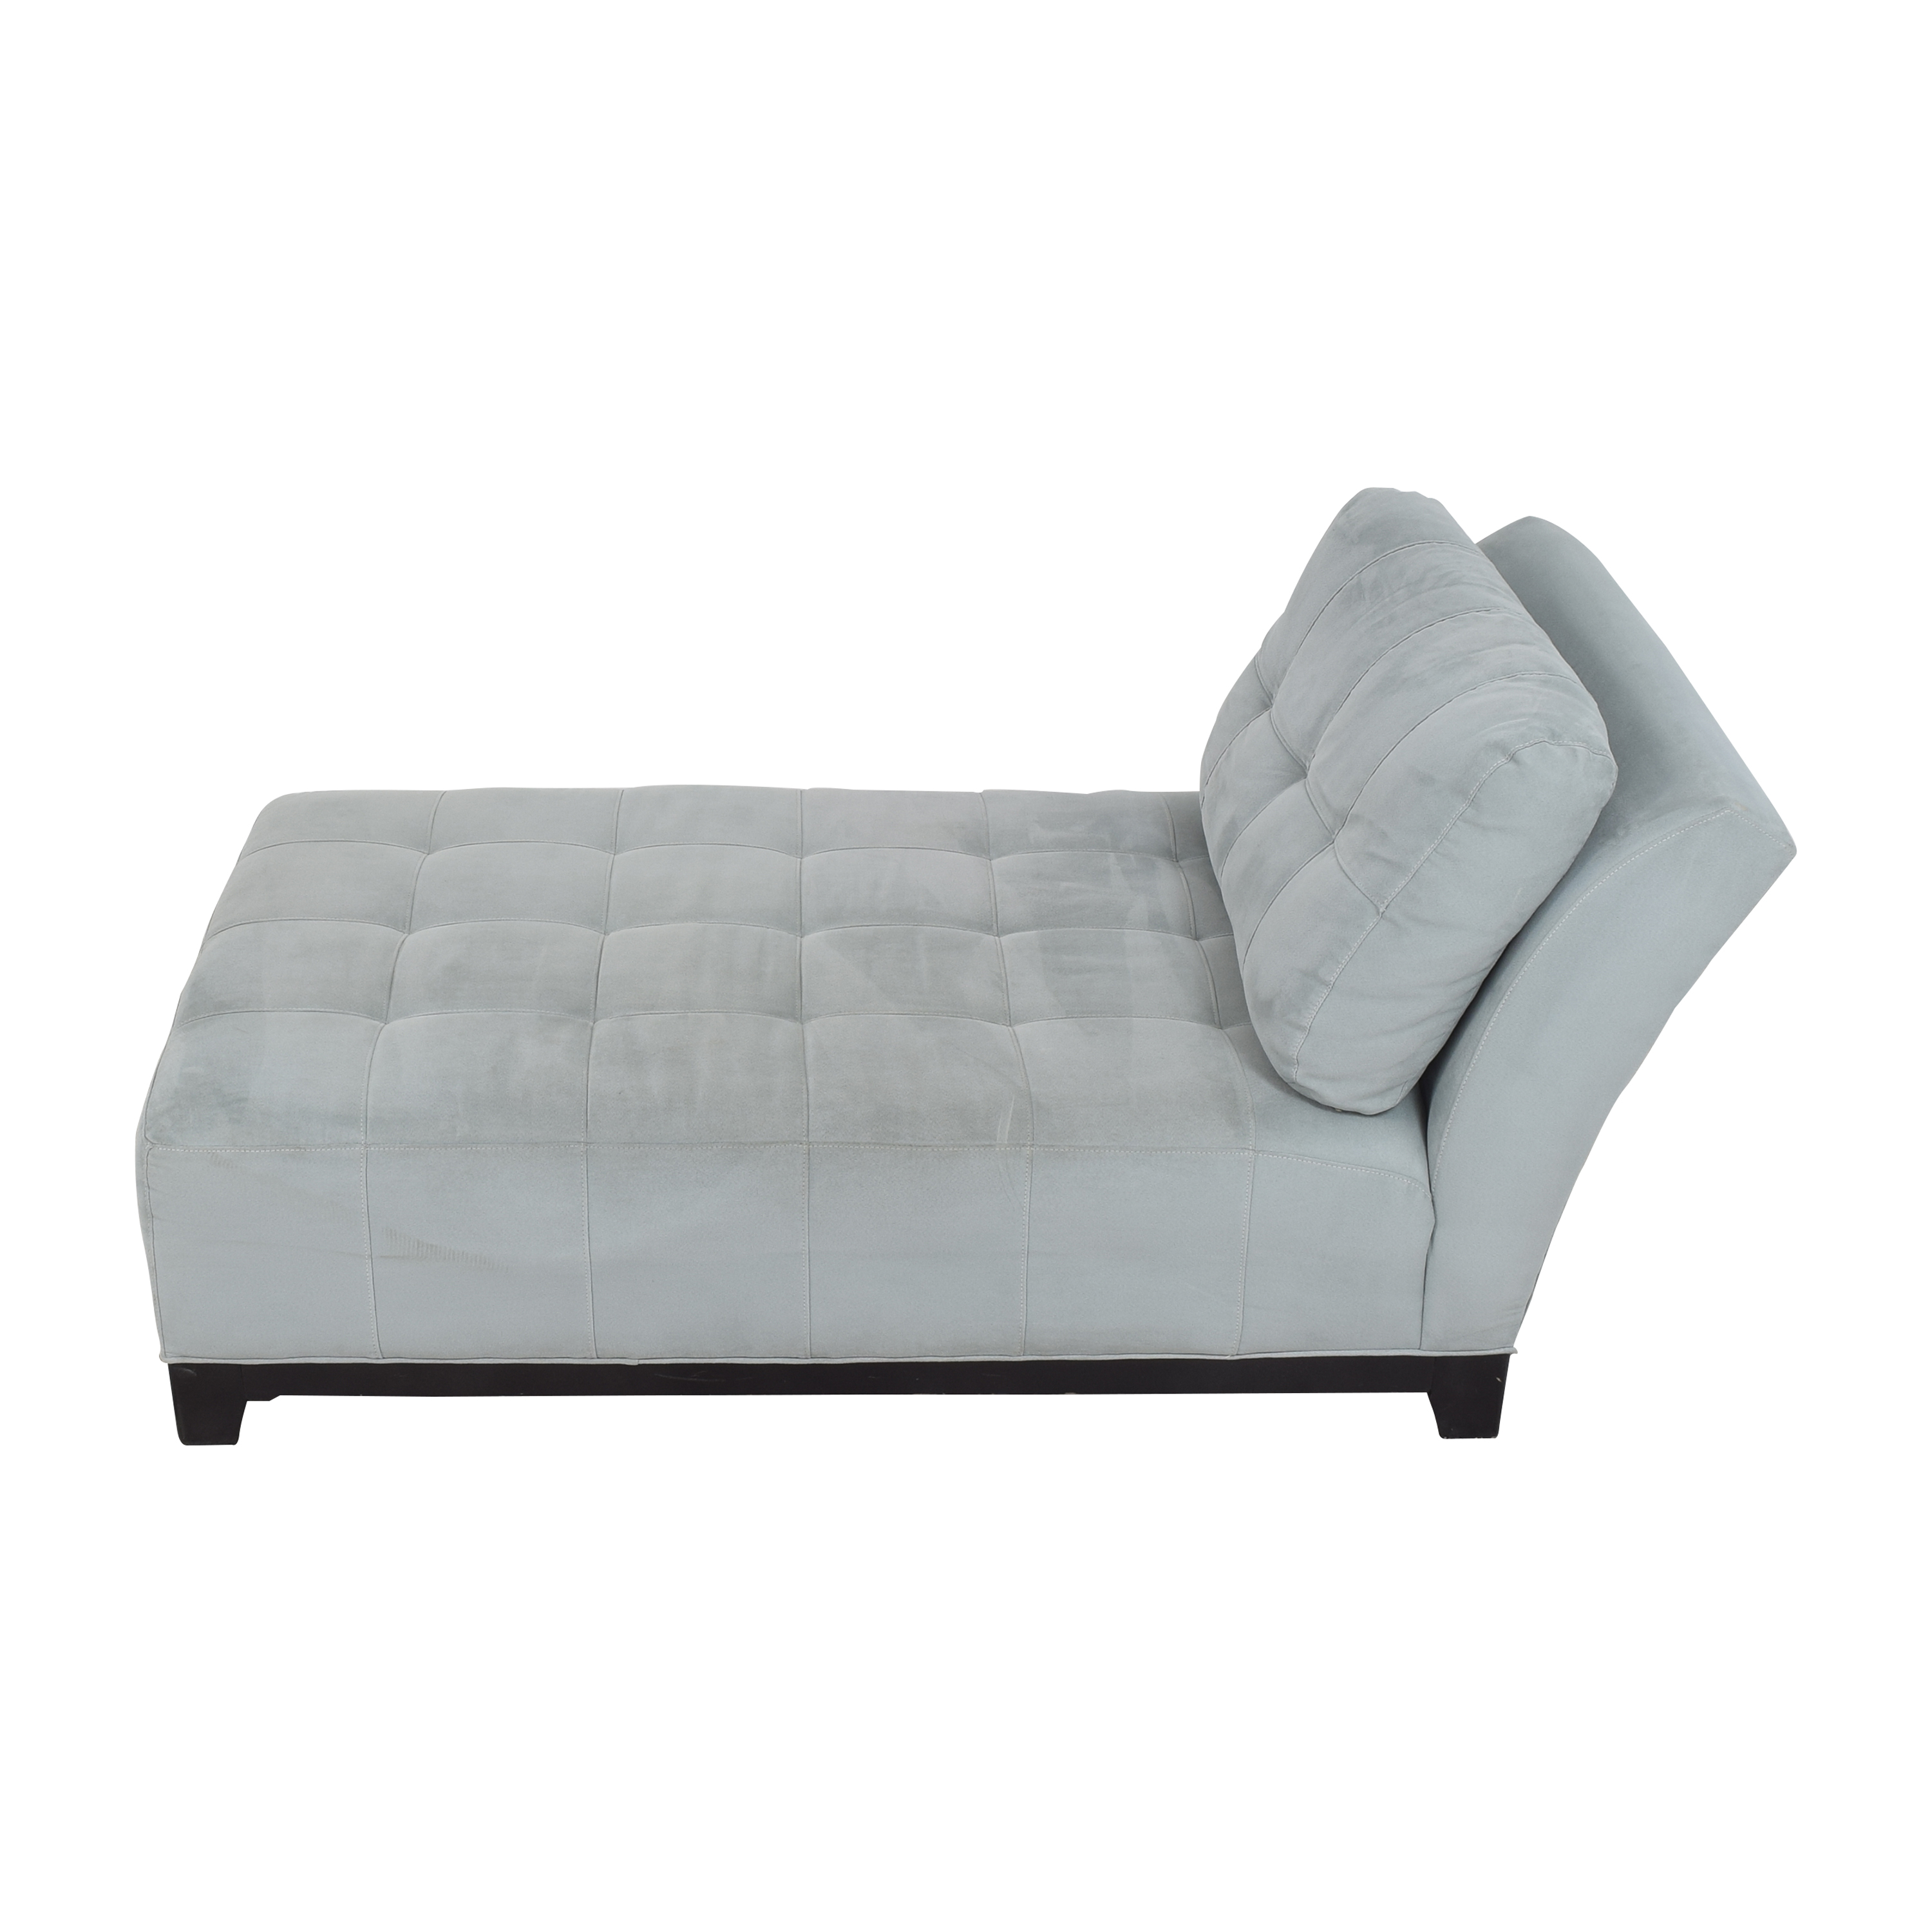 Raymour & Flanigan Raymour & Flanigan Tufted Chaise dimensions